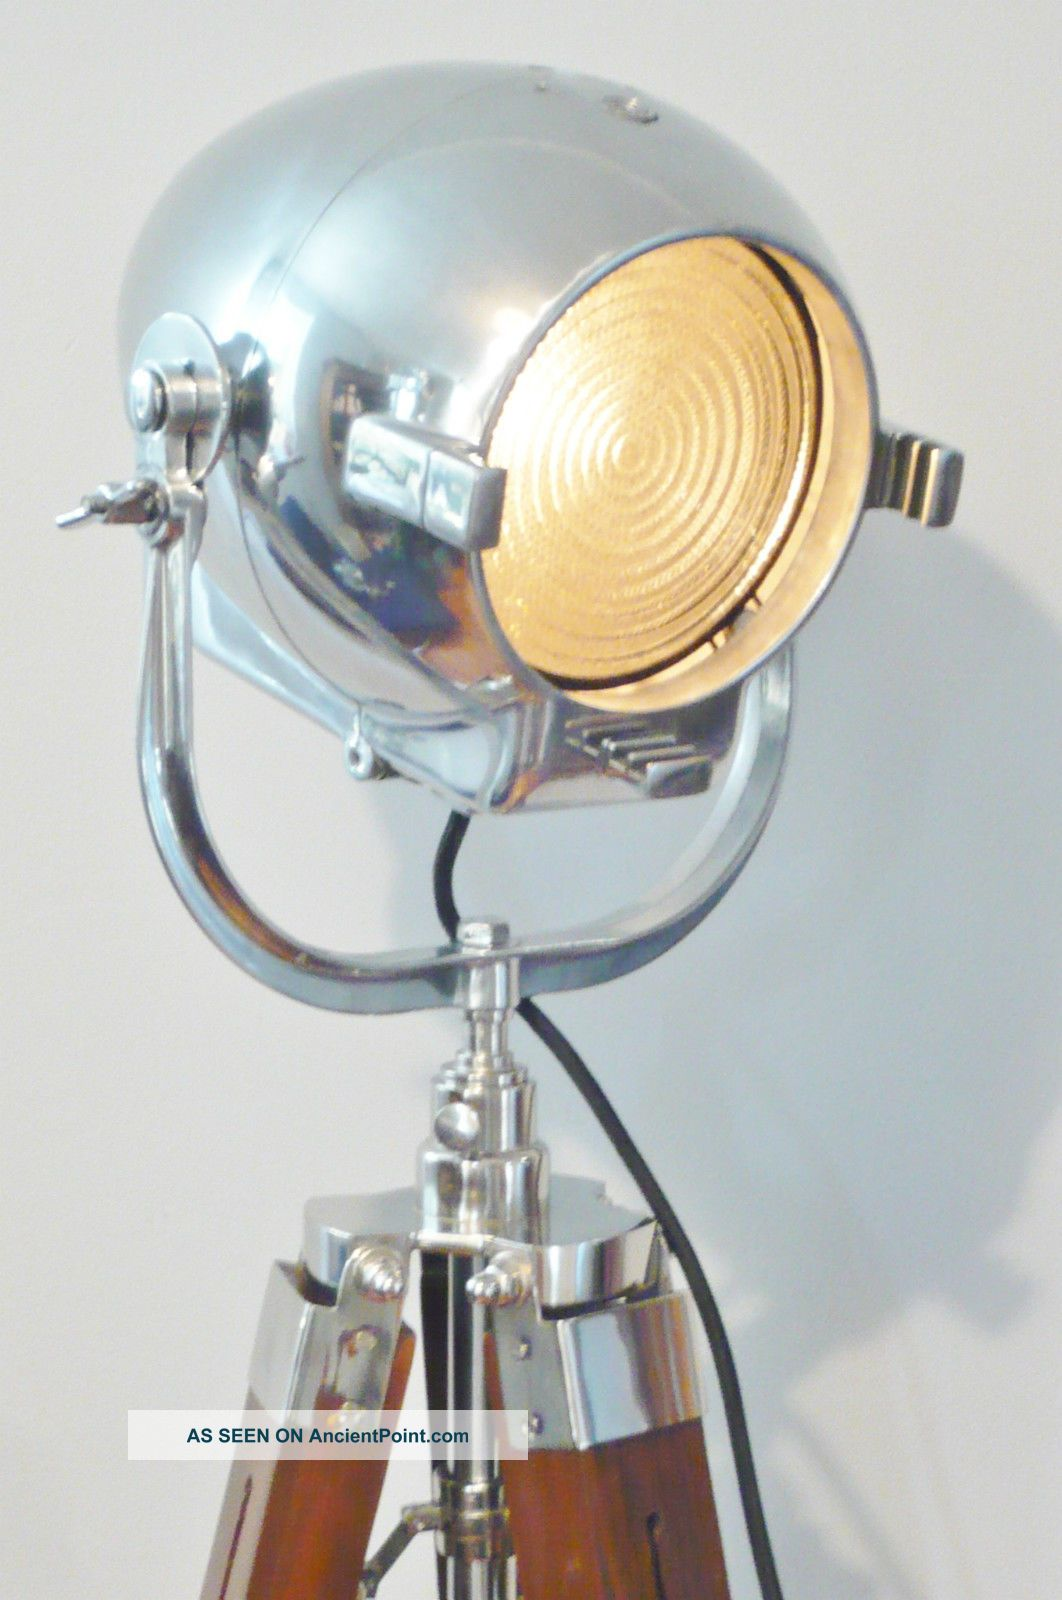 50s Vintage Theatre Film Lamp Industrial Iconic Design Floor Light Alessi Vitra Uncategorized photo